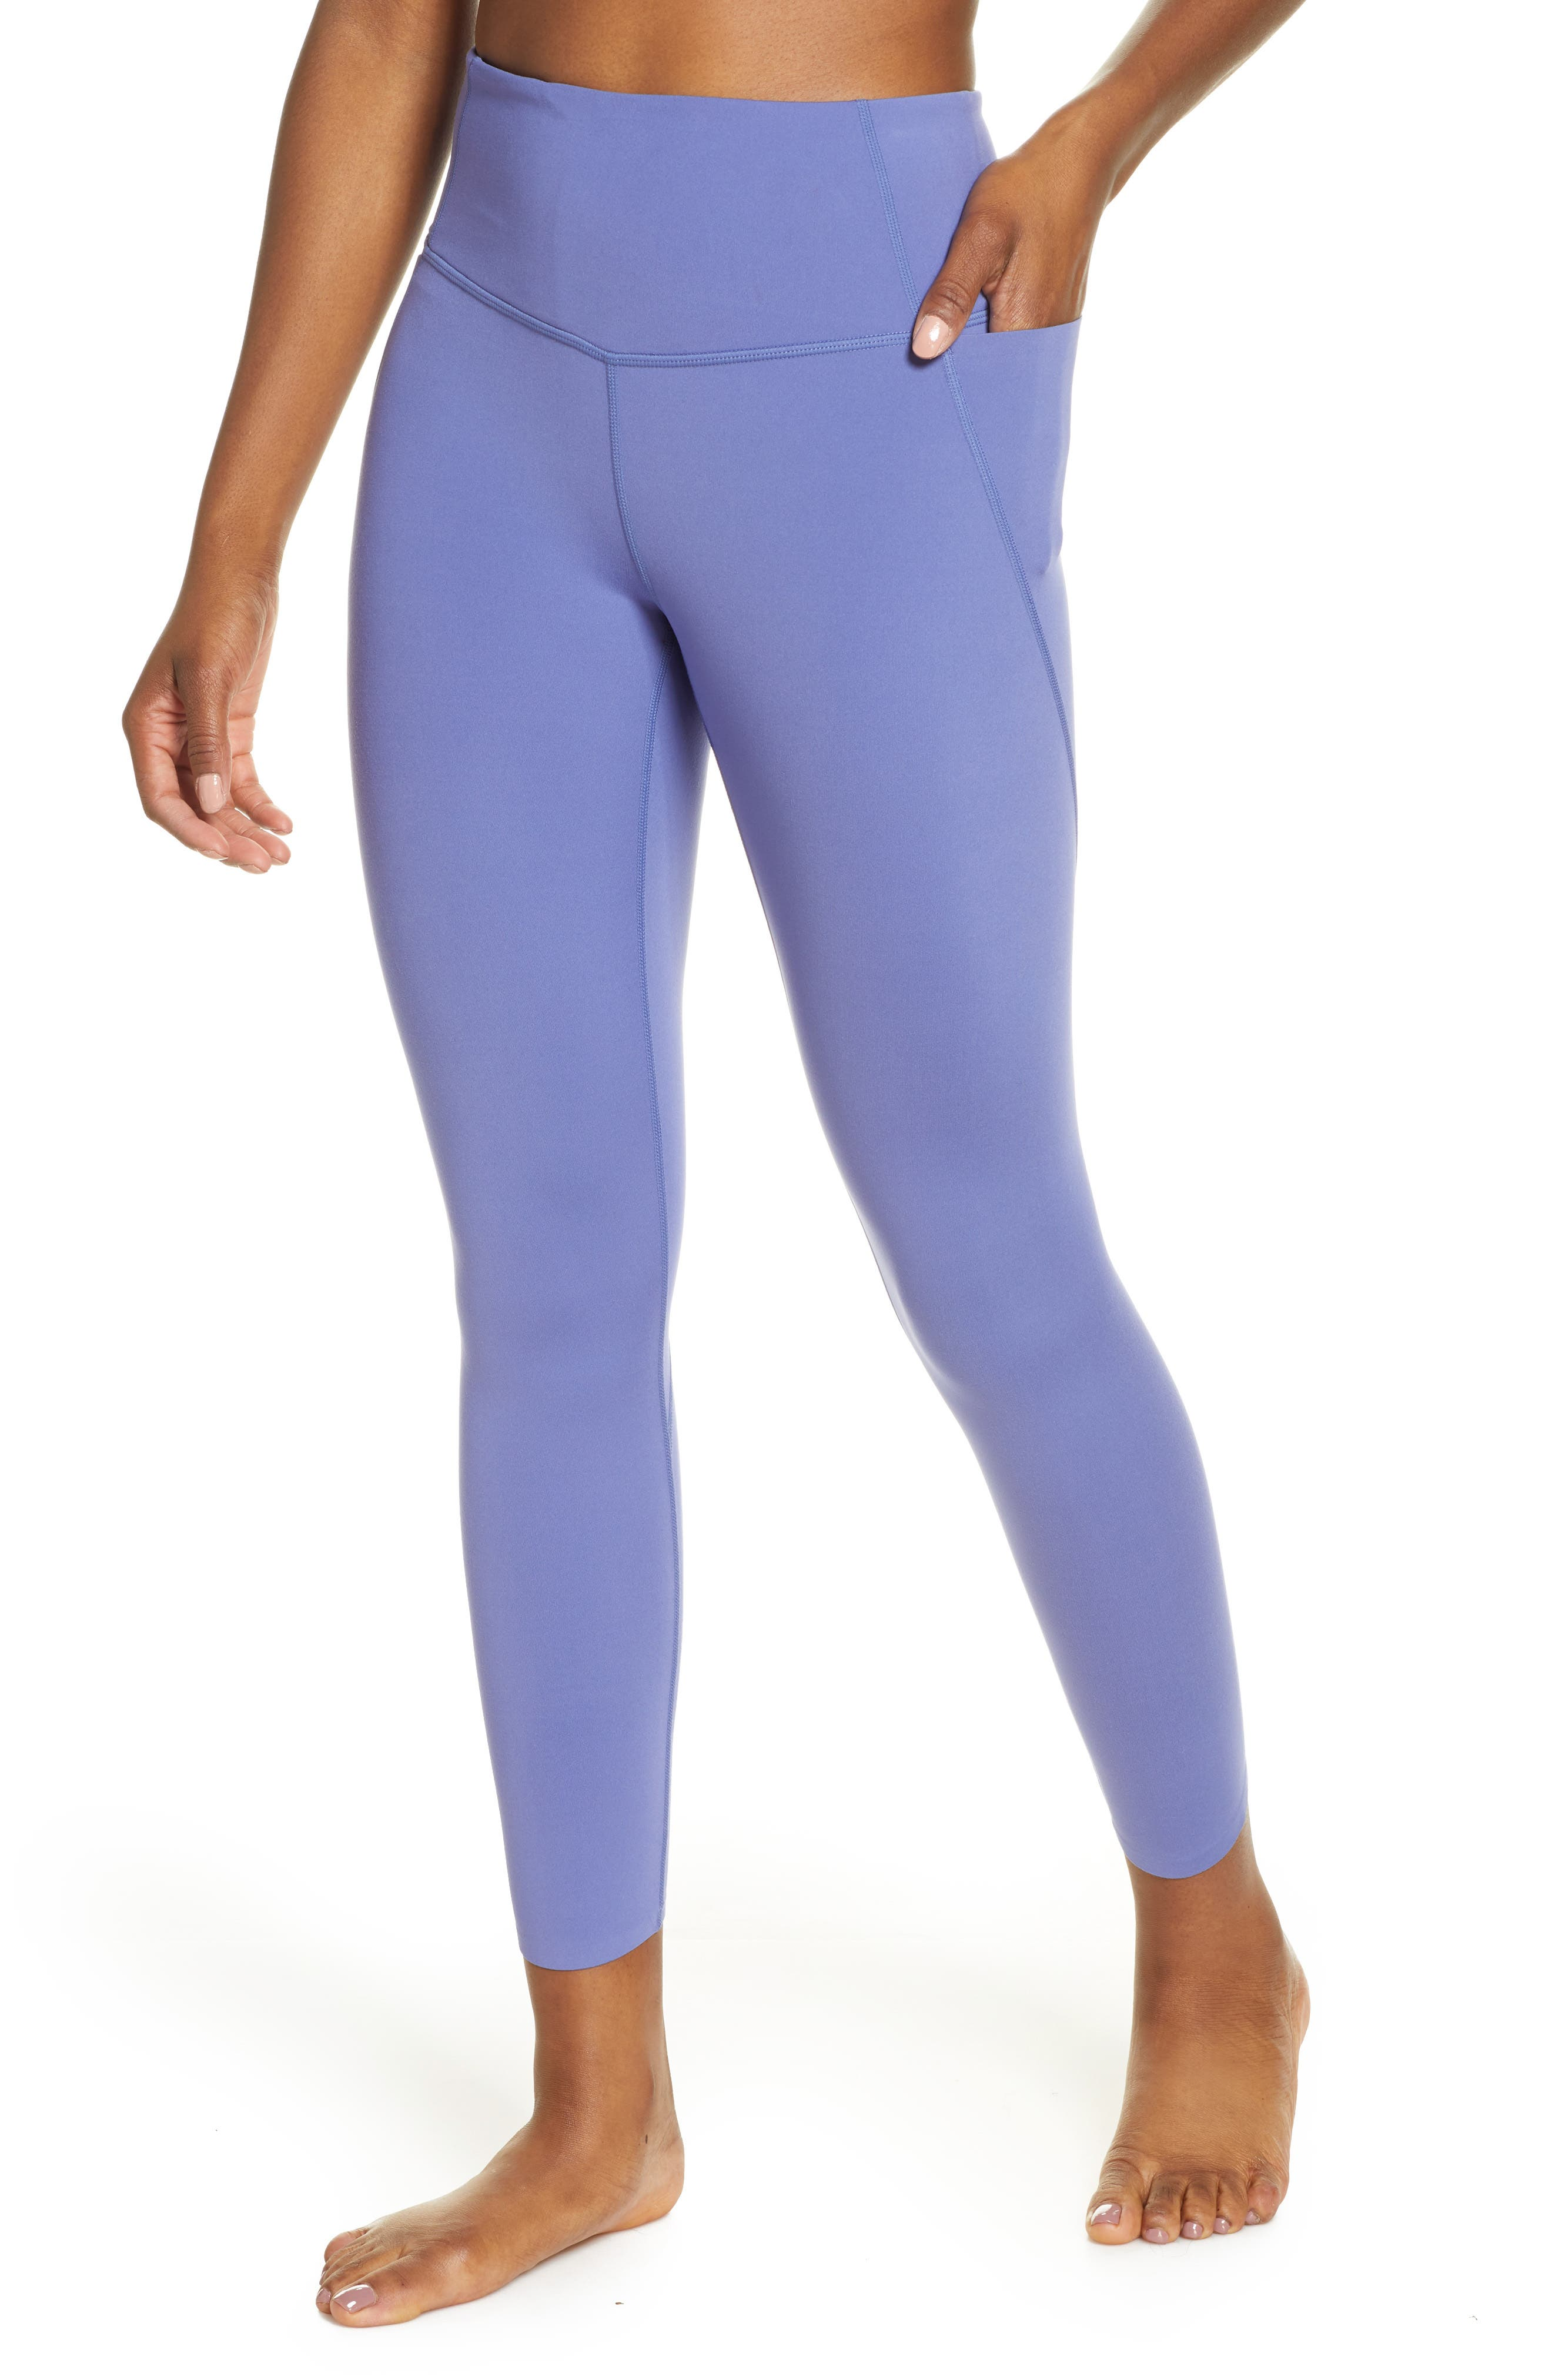 Women's Zella Studio Lite High Waist Pocket 7/8 Leggings